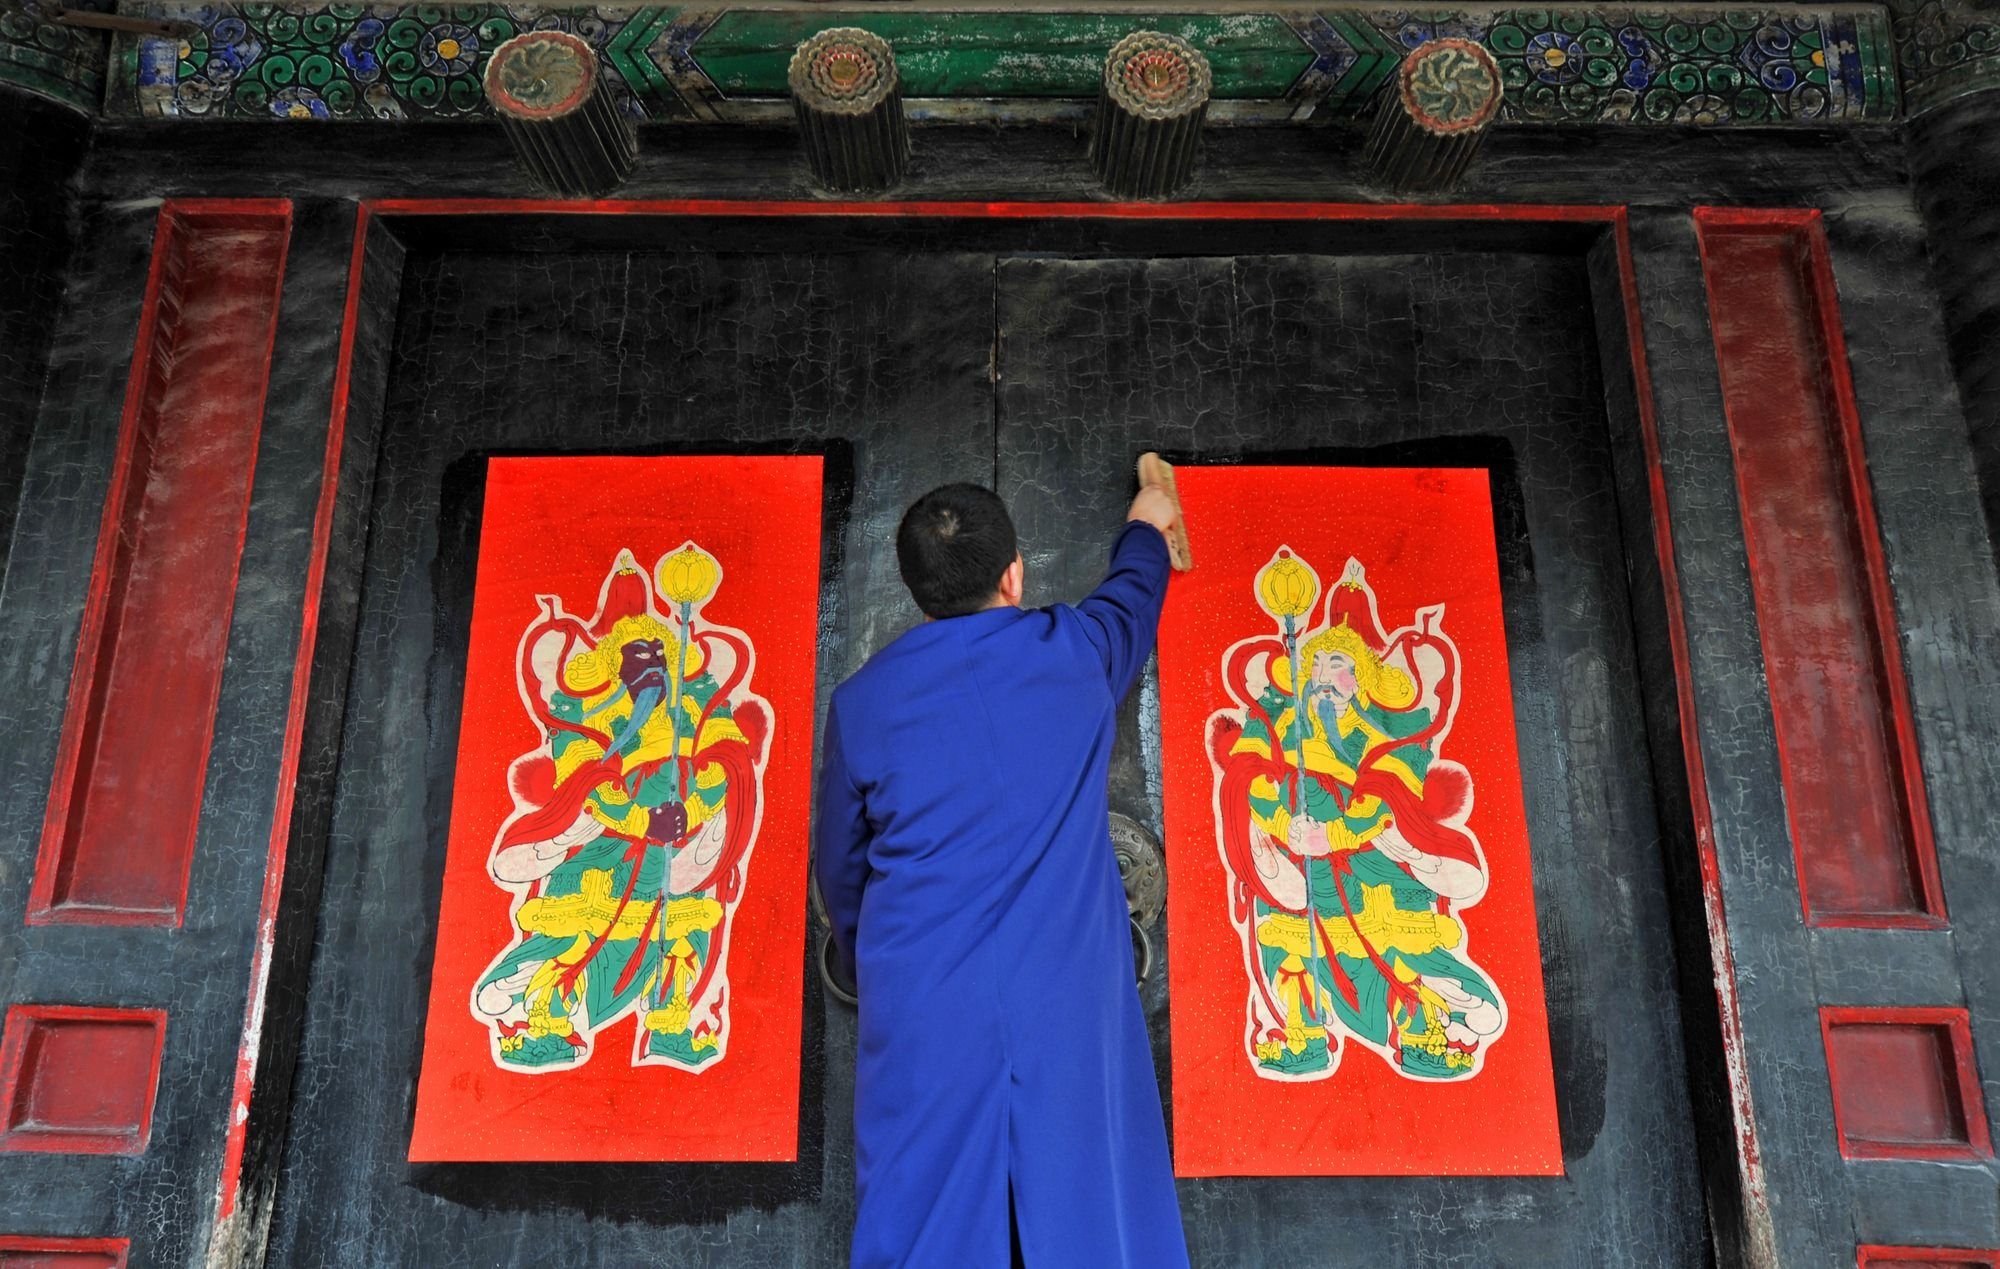 East China Prepares Door Gods Scrolls For Festive Preparation Before